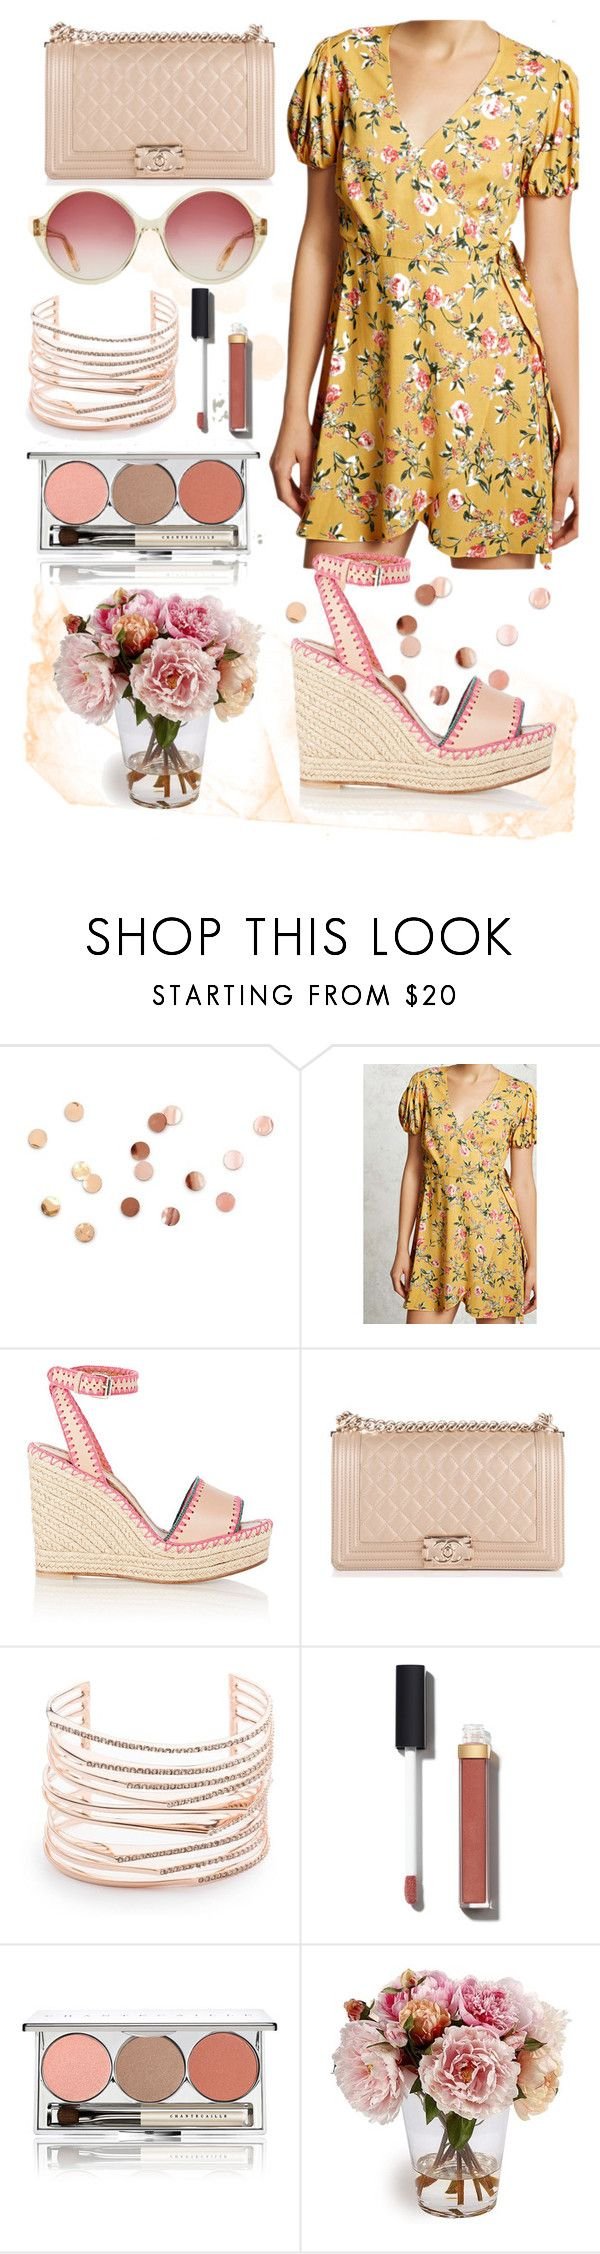 """""""summer outfit"""" by aletraghetti on Polyvore featuring moda, Umbra, Forever 21, Valentino, Chanel, Alexis Bittar, Chantecaille, Summer y floral"""